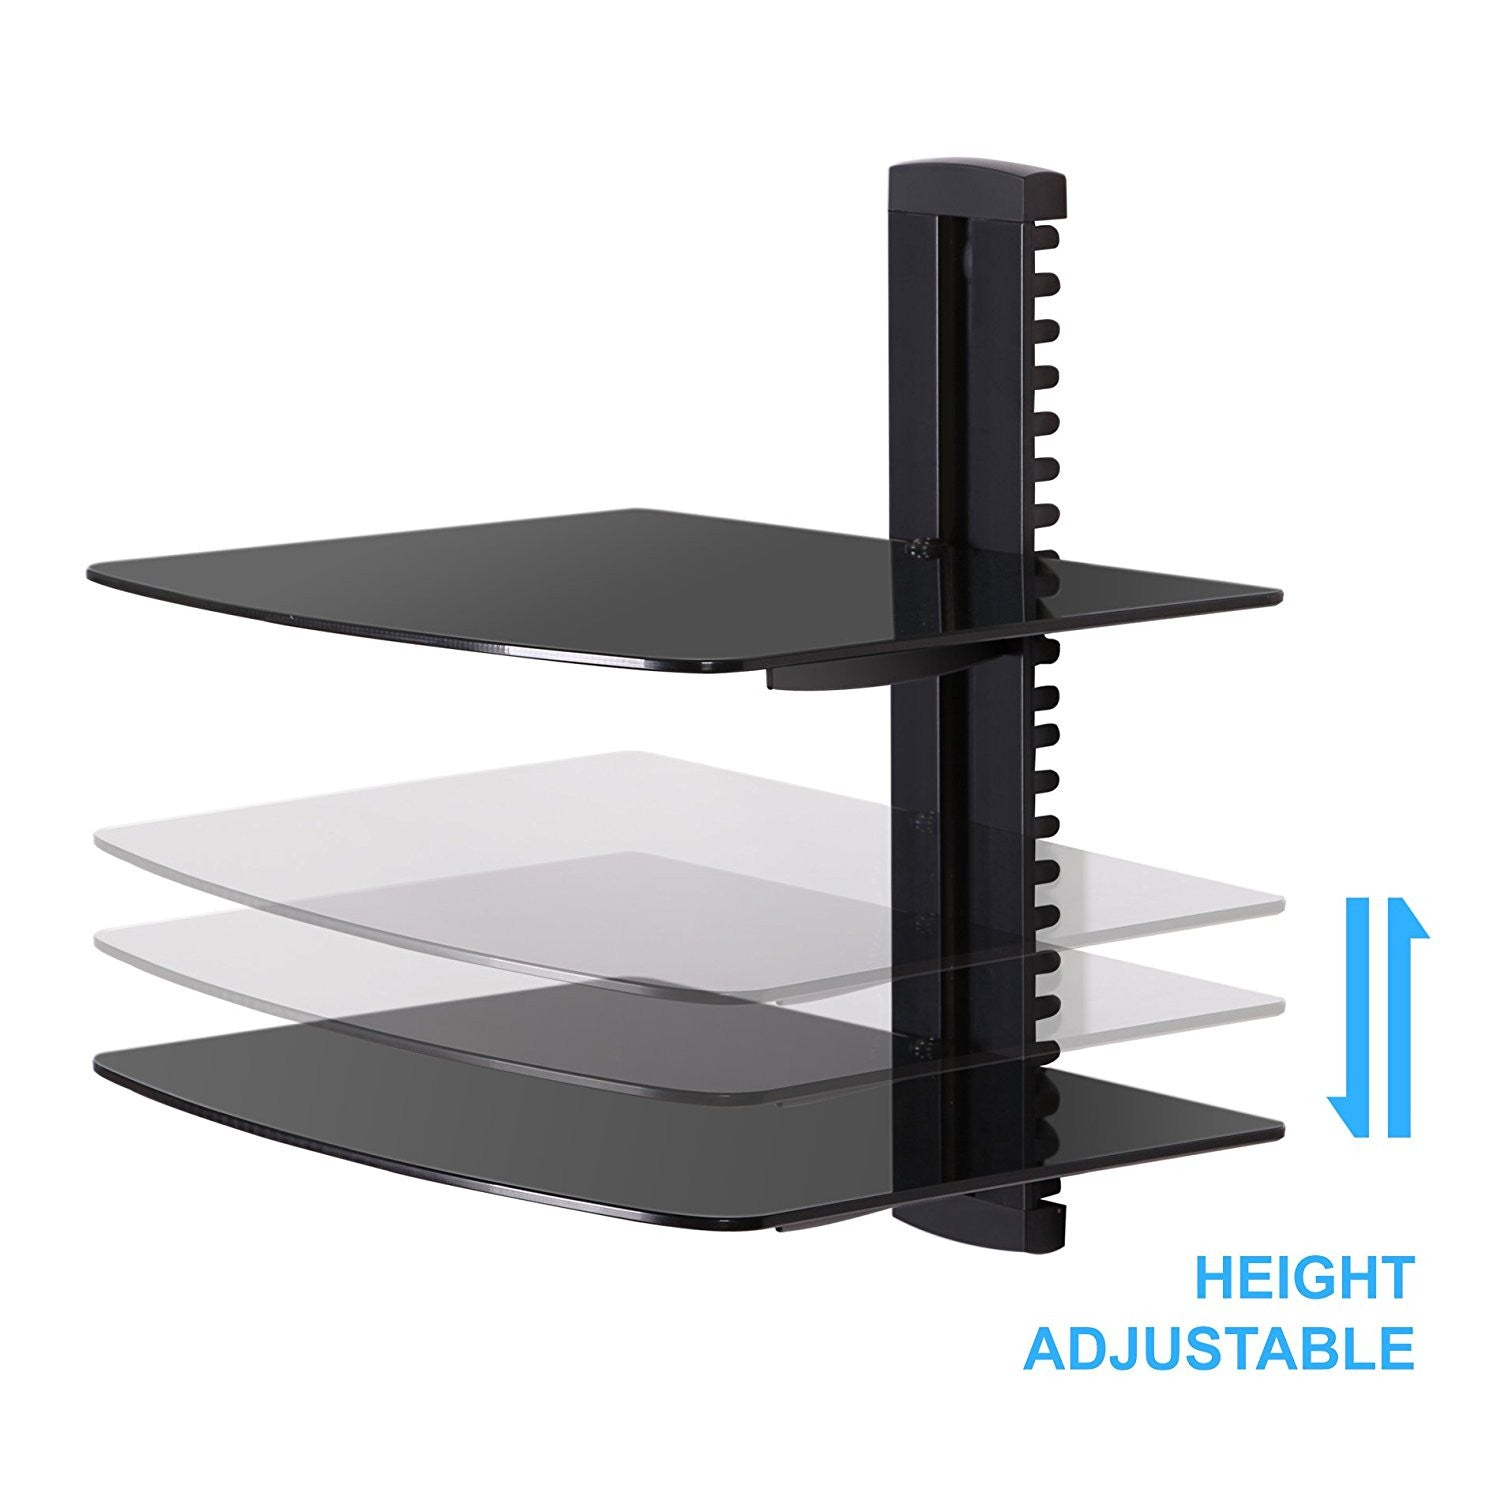 Black 2 tier adjustable wall mount glass floating av dvd fitueyes tempered glass black 2 tiers floating shelves av shelf wall mount shelf black bracket stand for dvd playersblu ray players av receiver amipublicfo Gallery